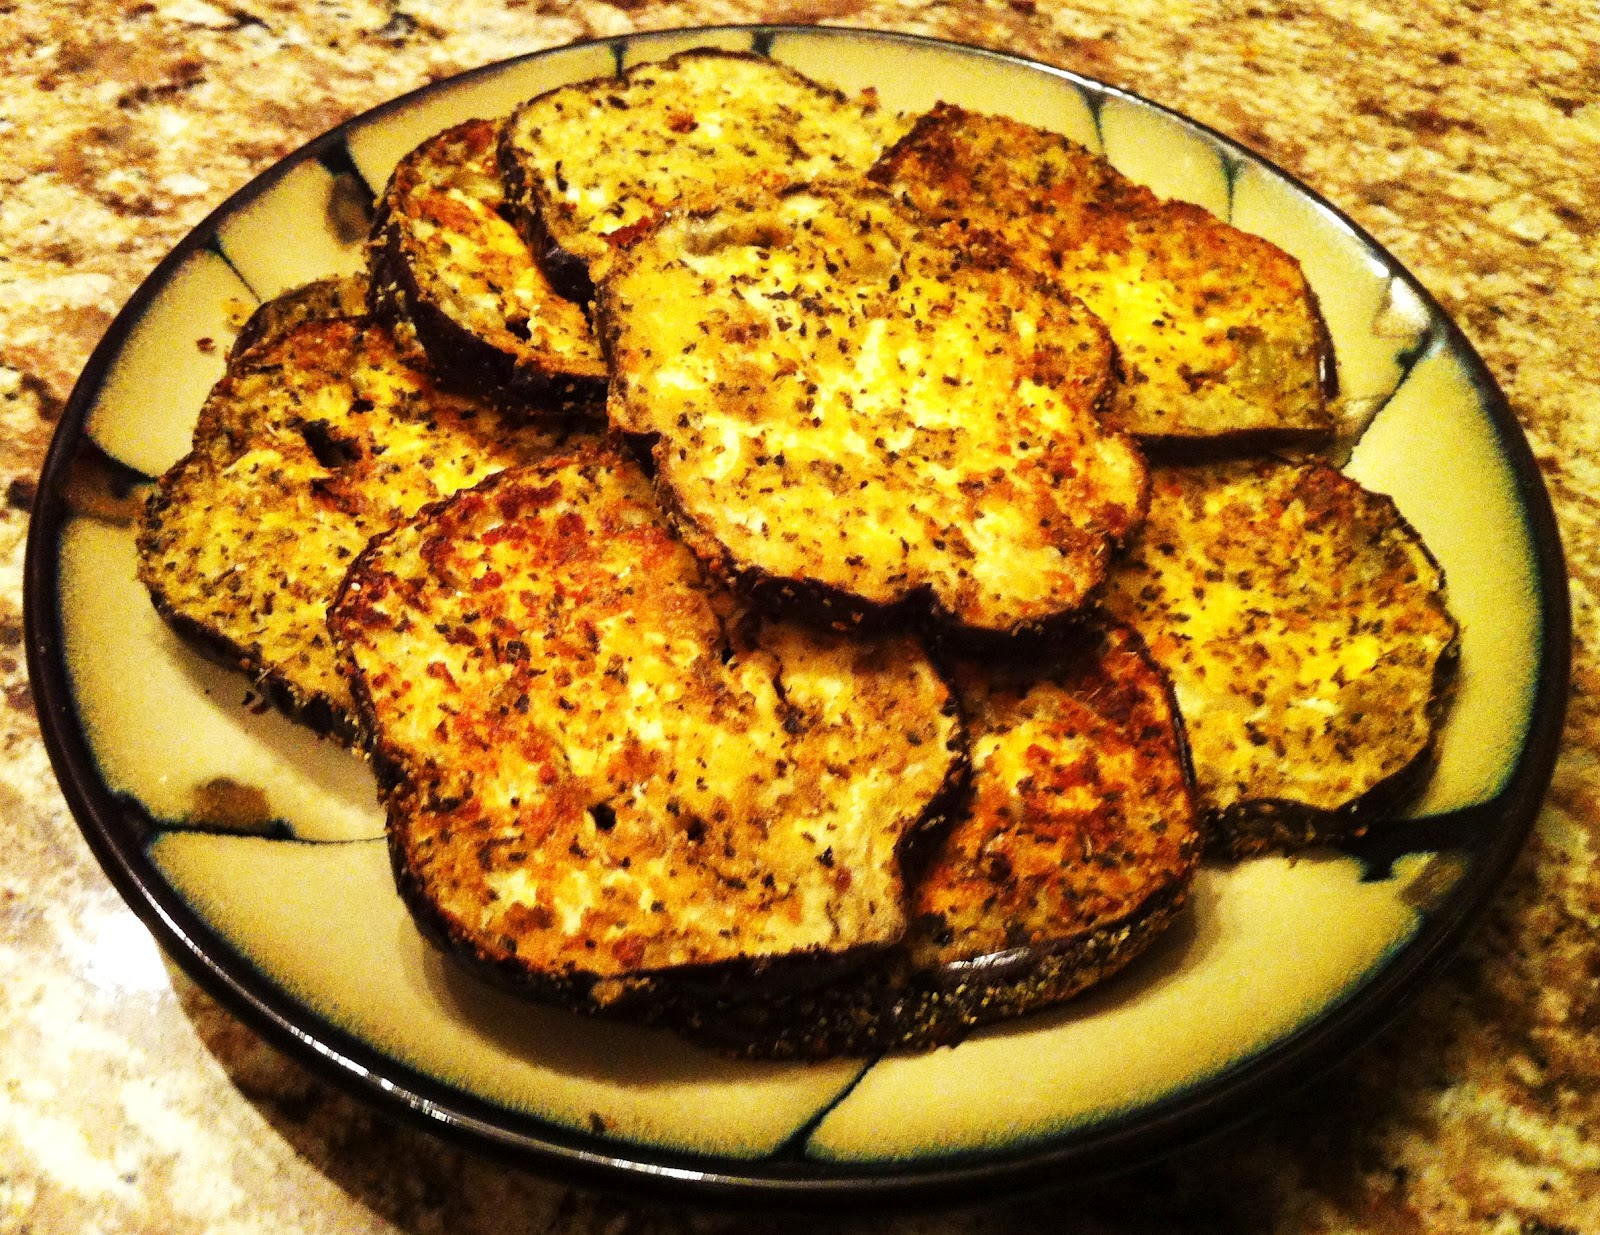 Delaine's Skinny Delights: Baked Eggplant With Parmesan